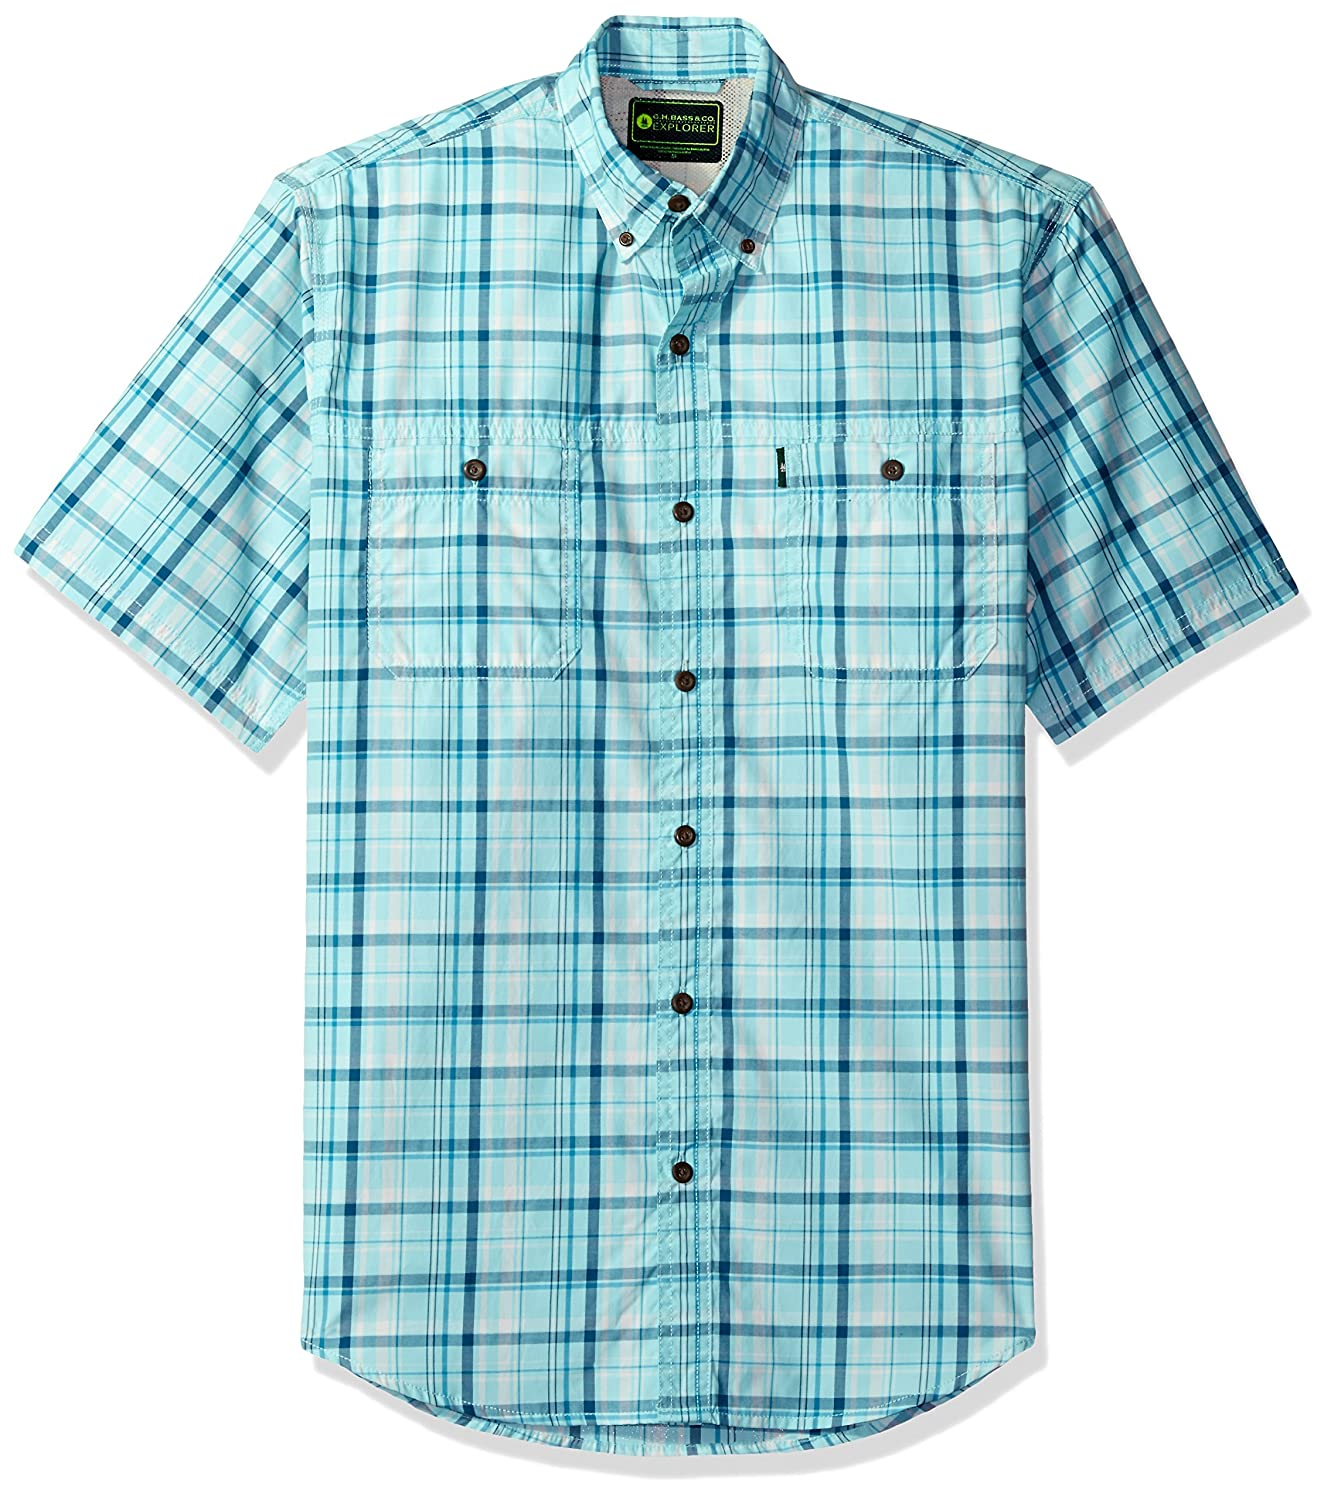 Bass Mens Explorer Fancy Short Sleeve Plaid Shirt Arrow Men' s Tops 5279503